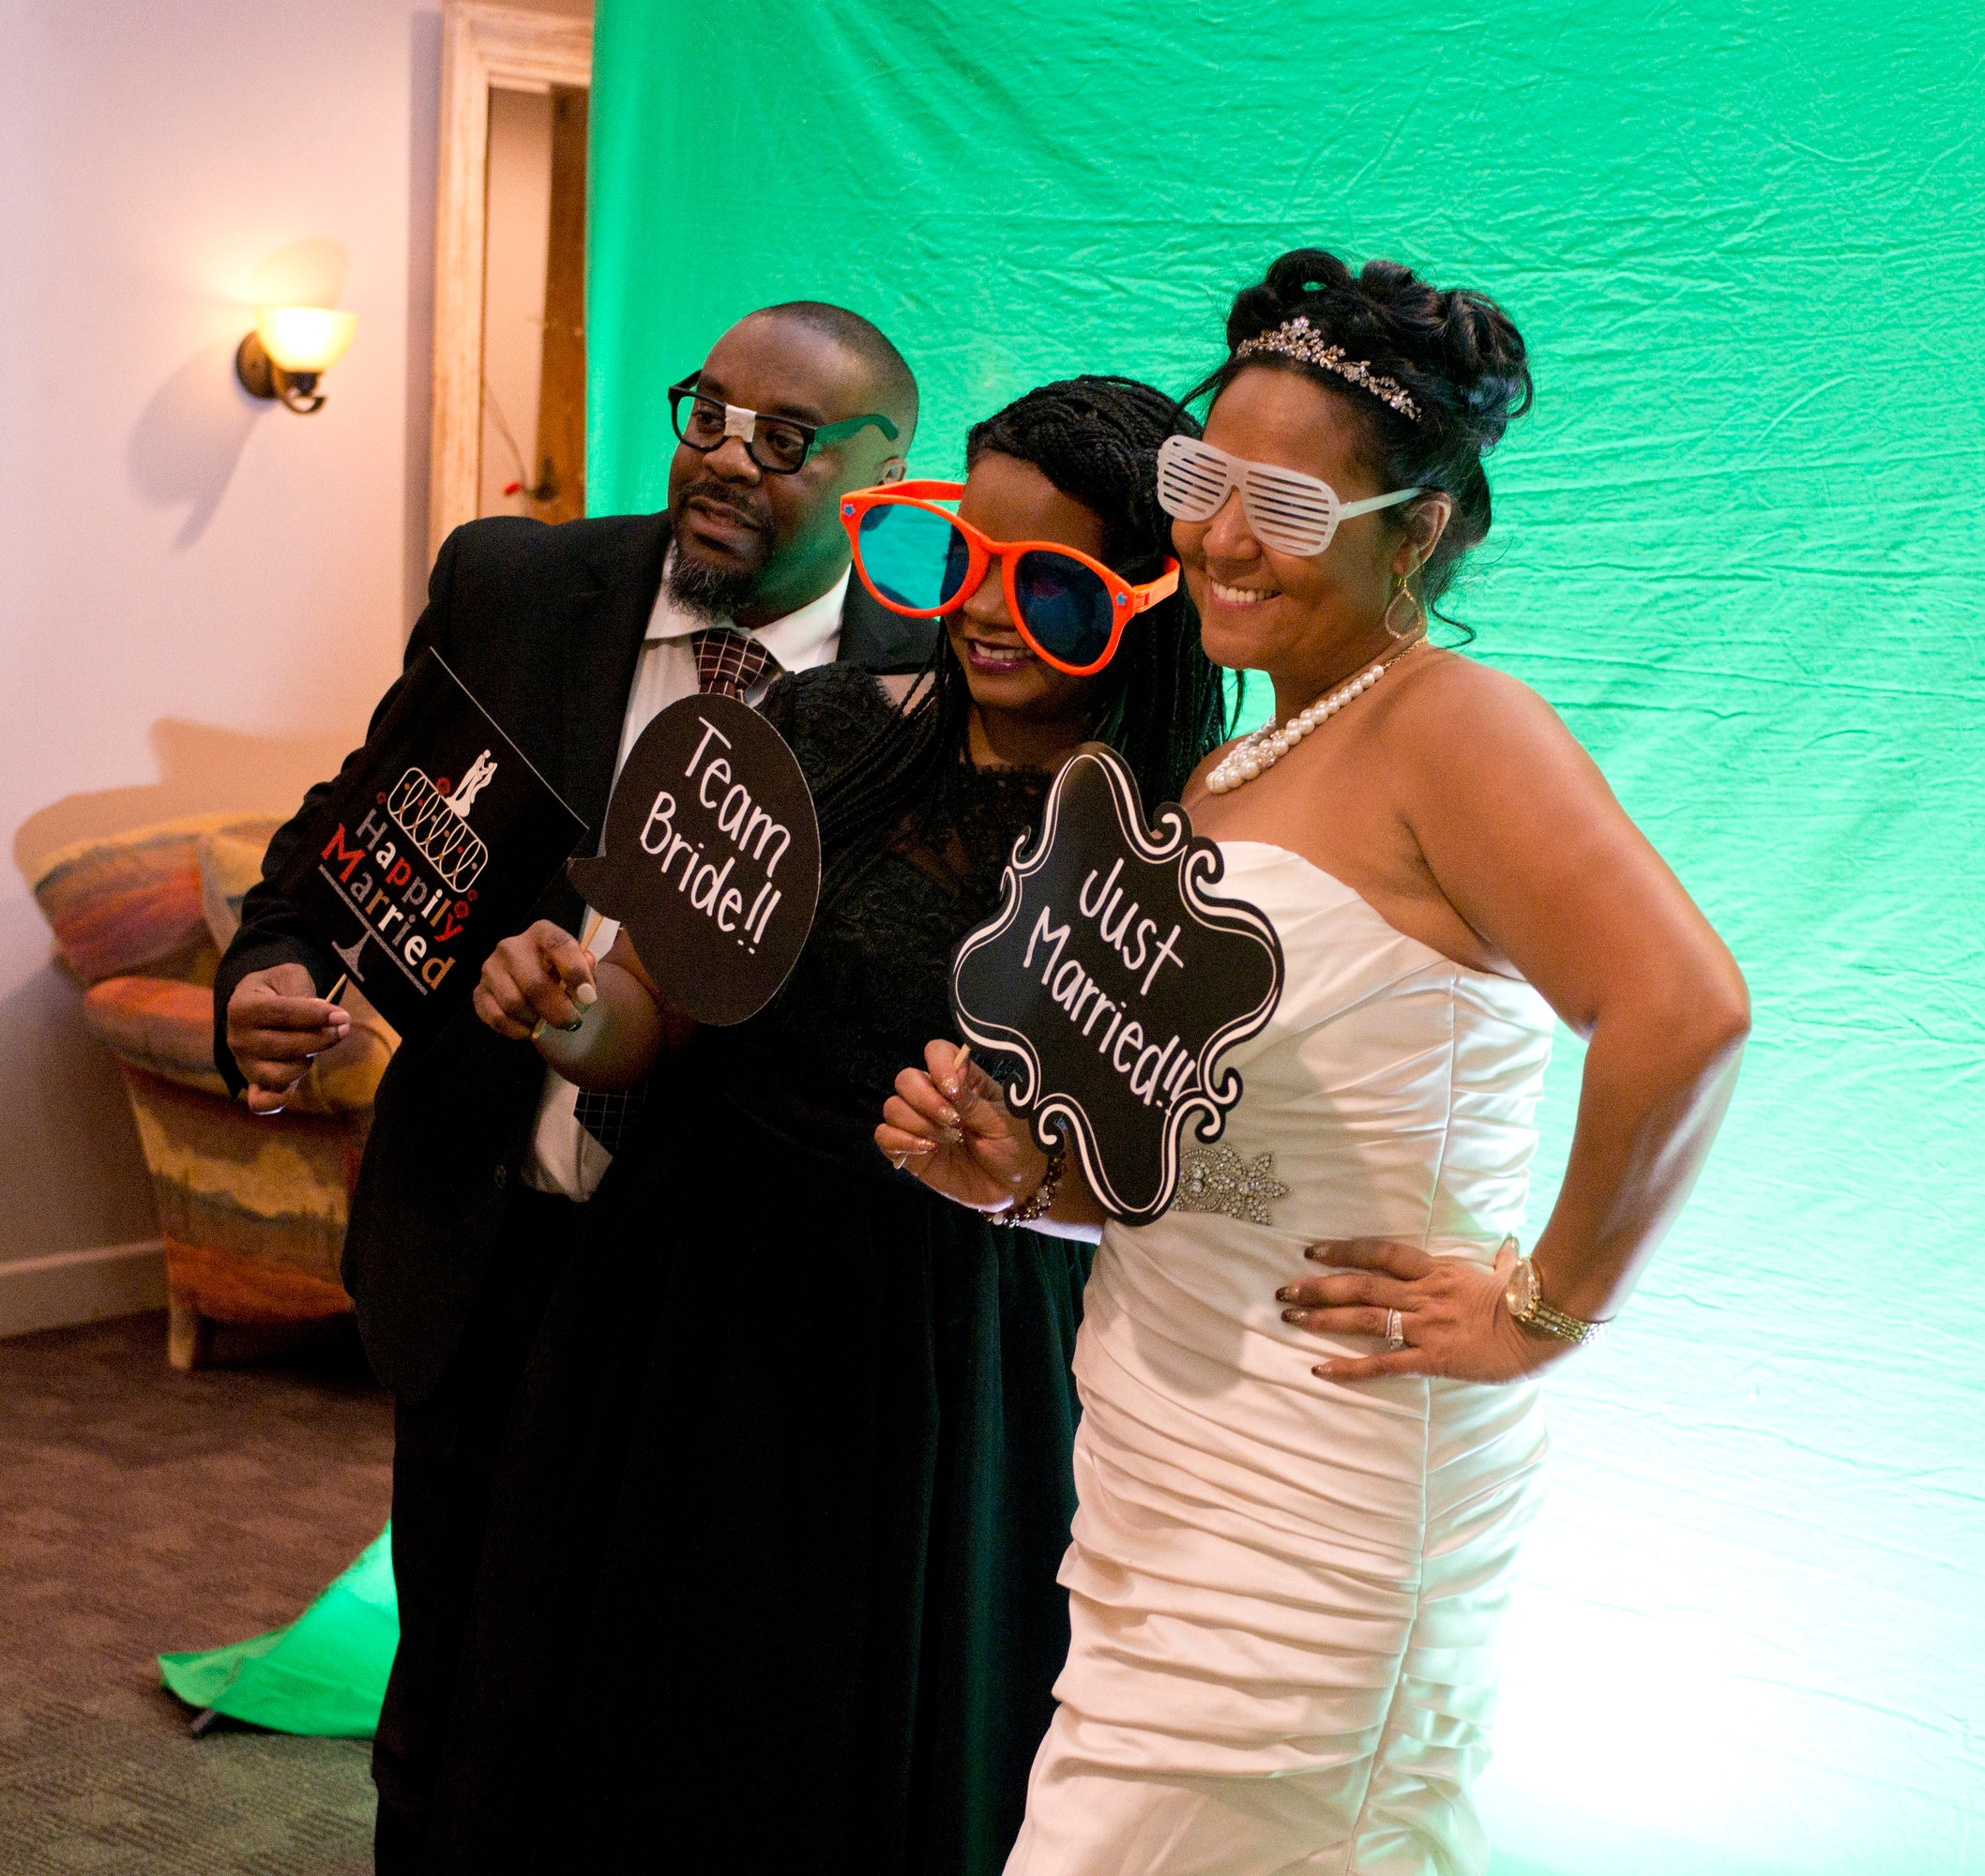 Green Screen Photo Booth - Our green screen photo booth is one-of-a-kind; with a green screen that stretches over twelve feet wide, high-quality dye sub printers, and a custom background made for each event. Including props!